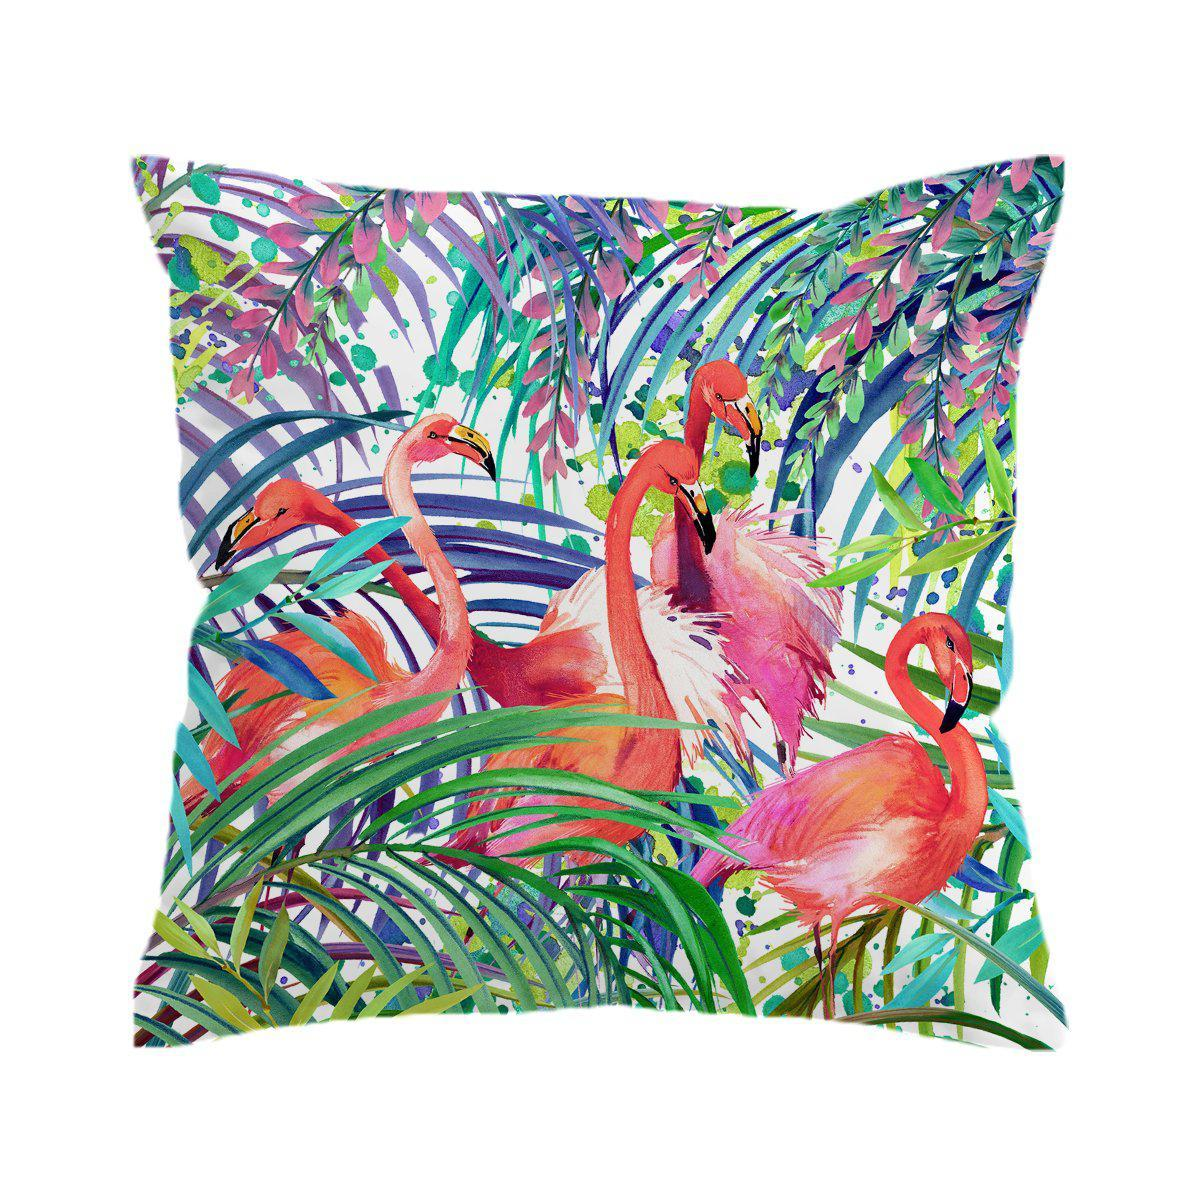 New Flamingo Passion Pillow Cover-Coastal Passion